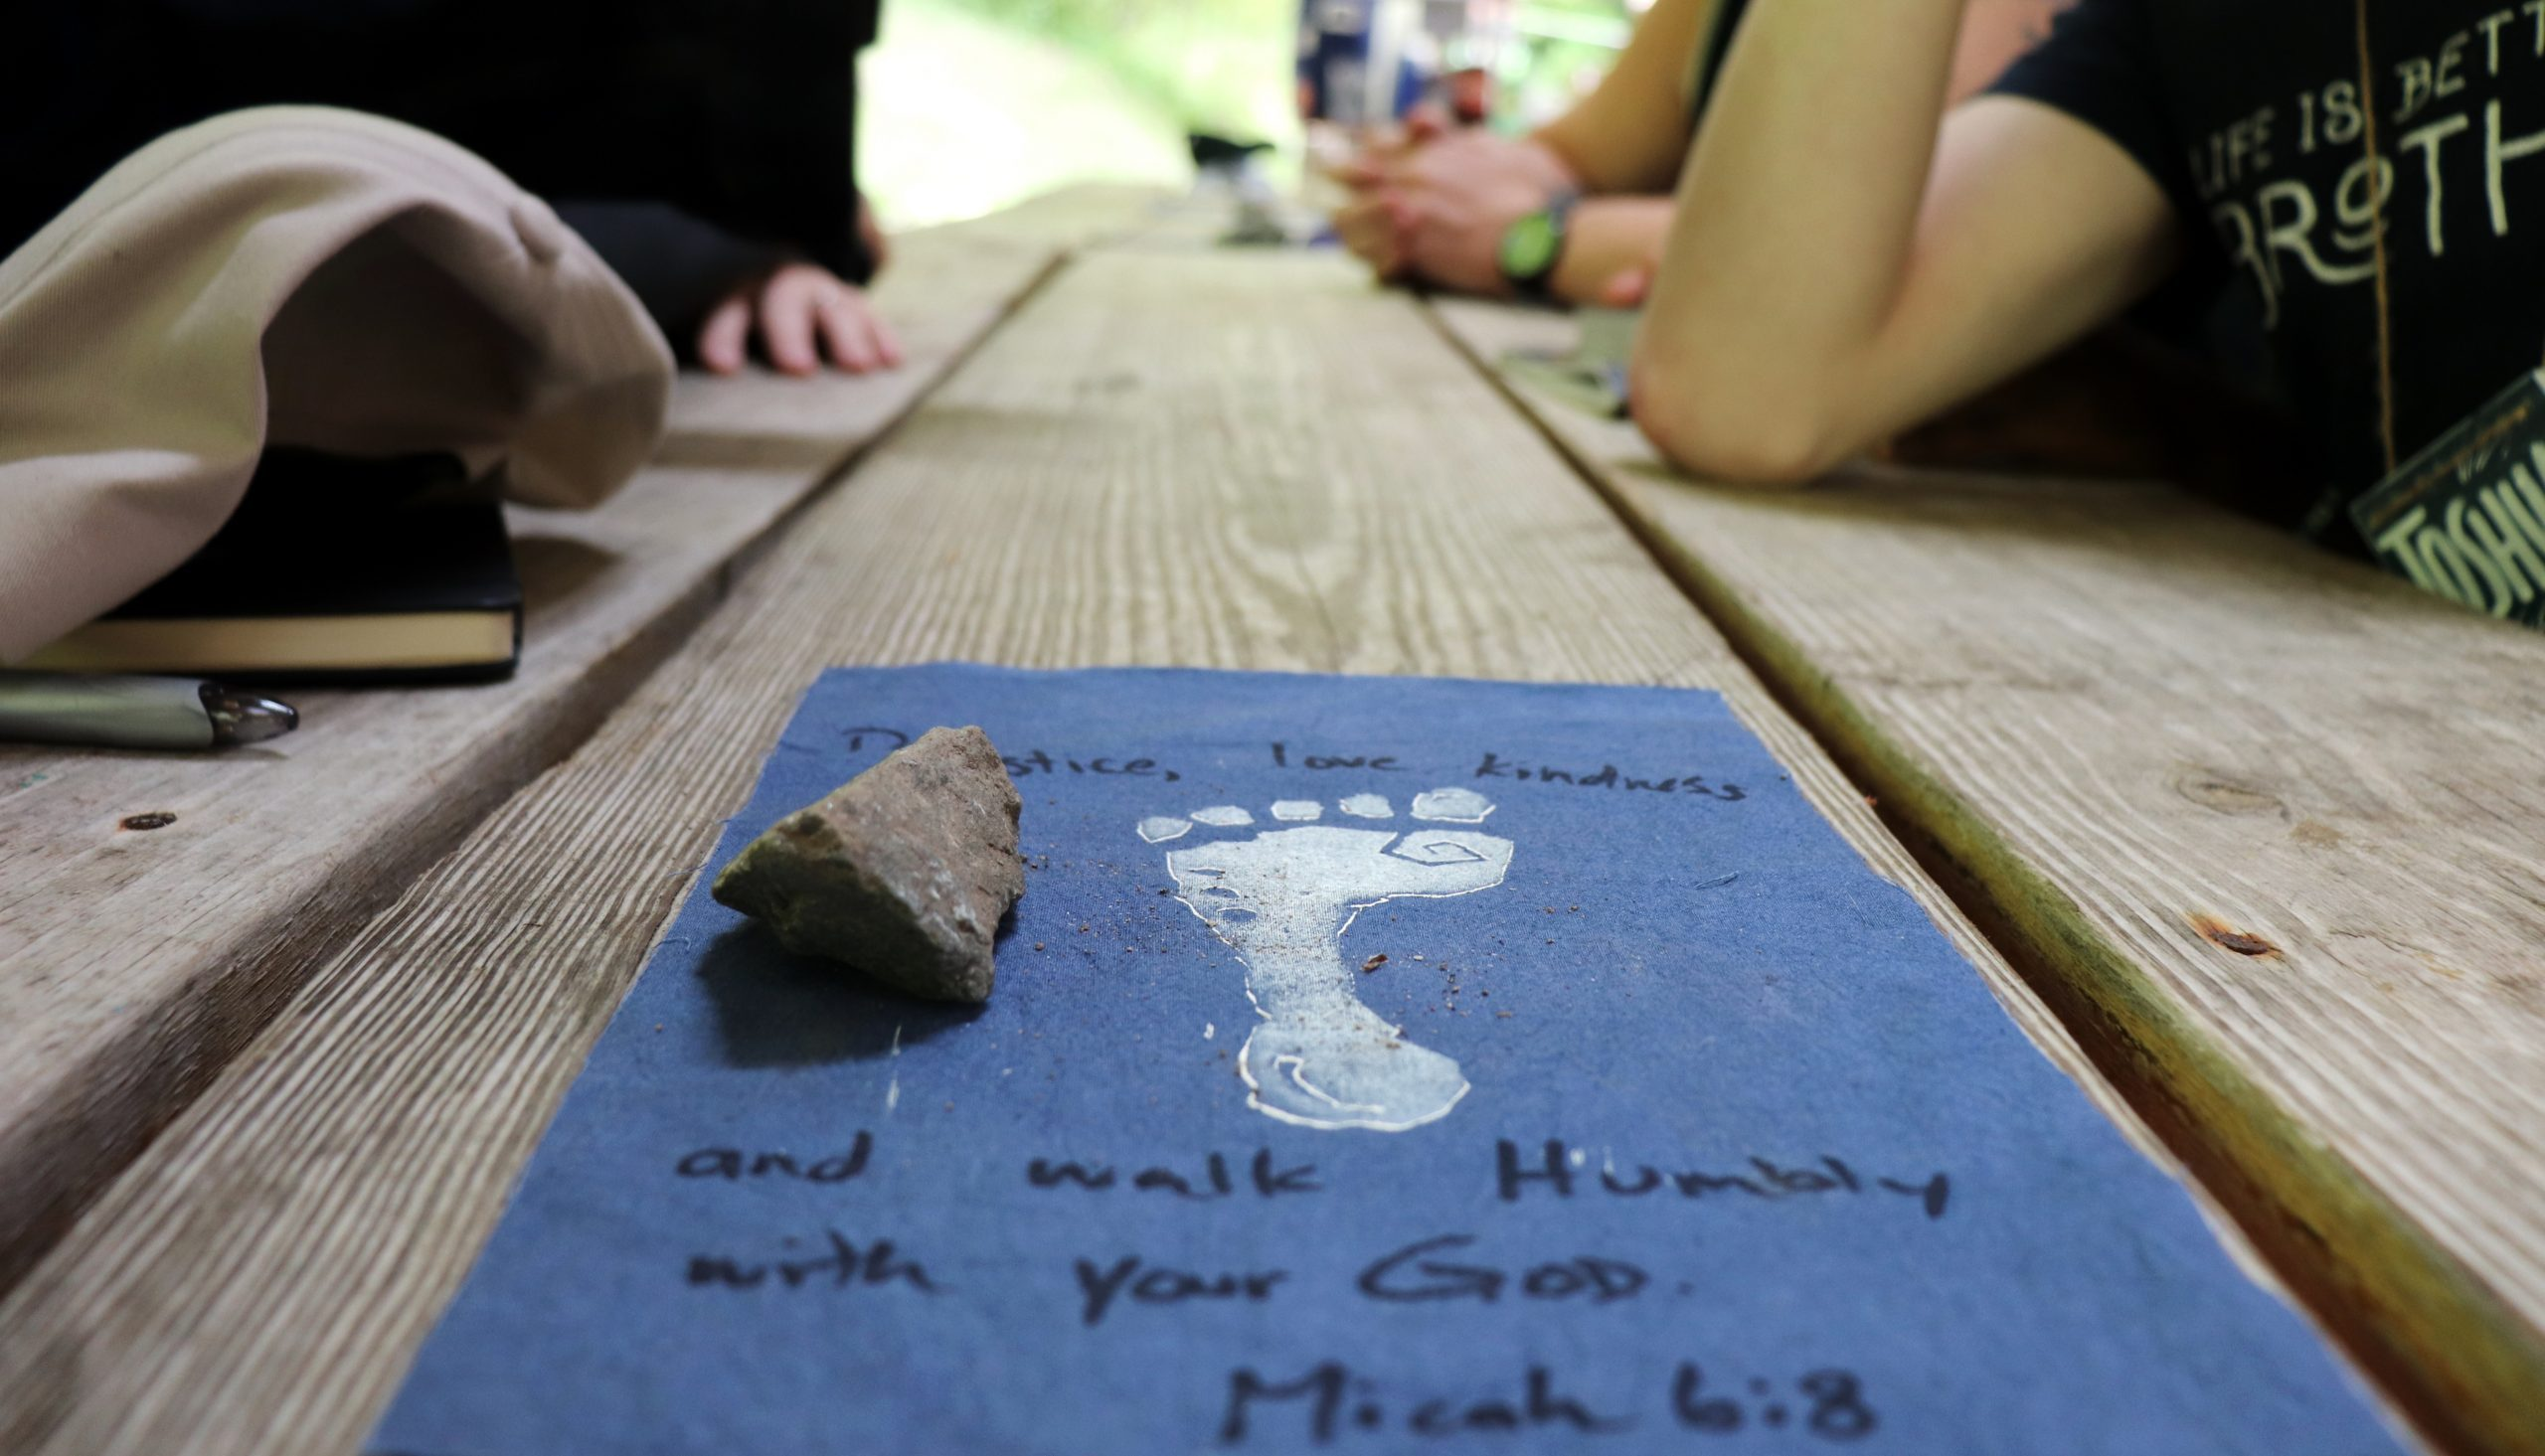 Finding Humility Through Beauty at the YOBBERS Retreat